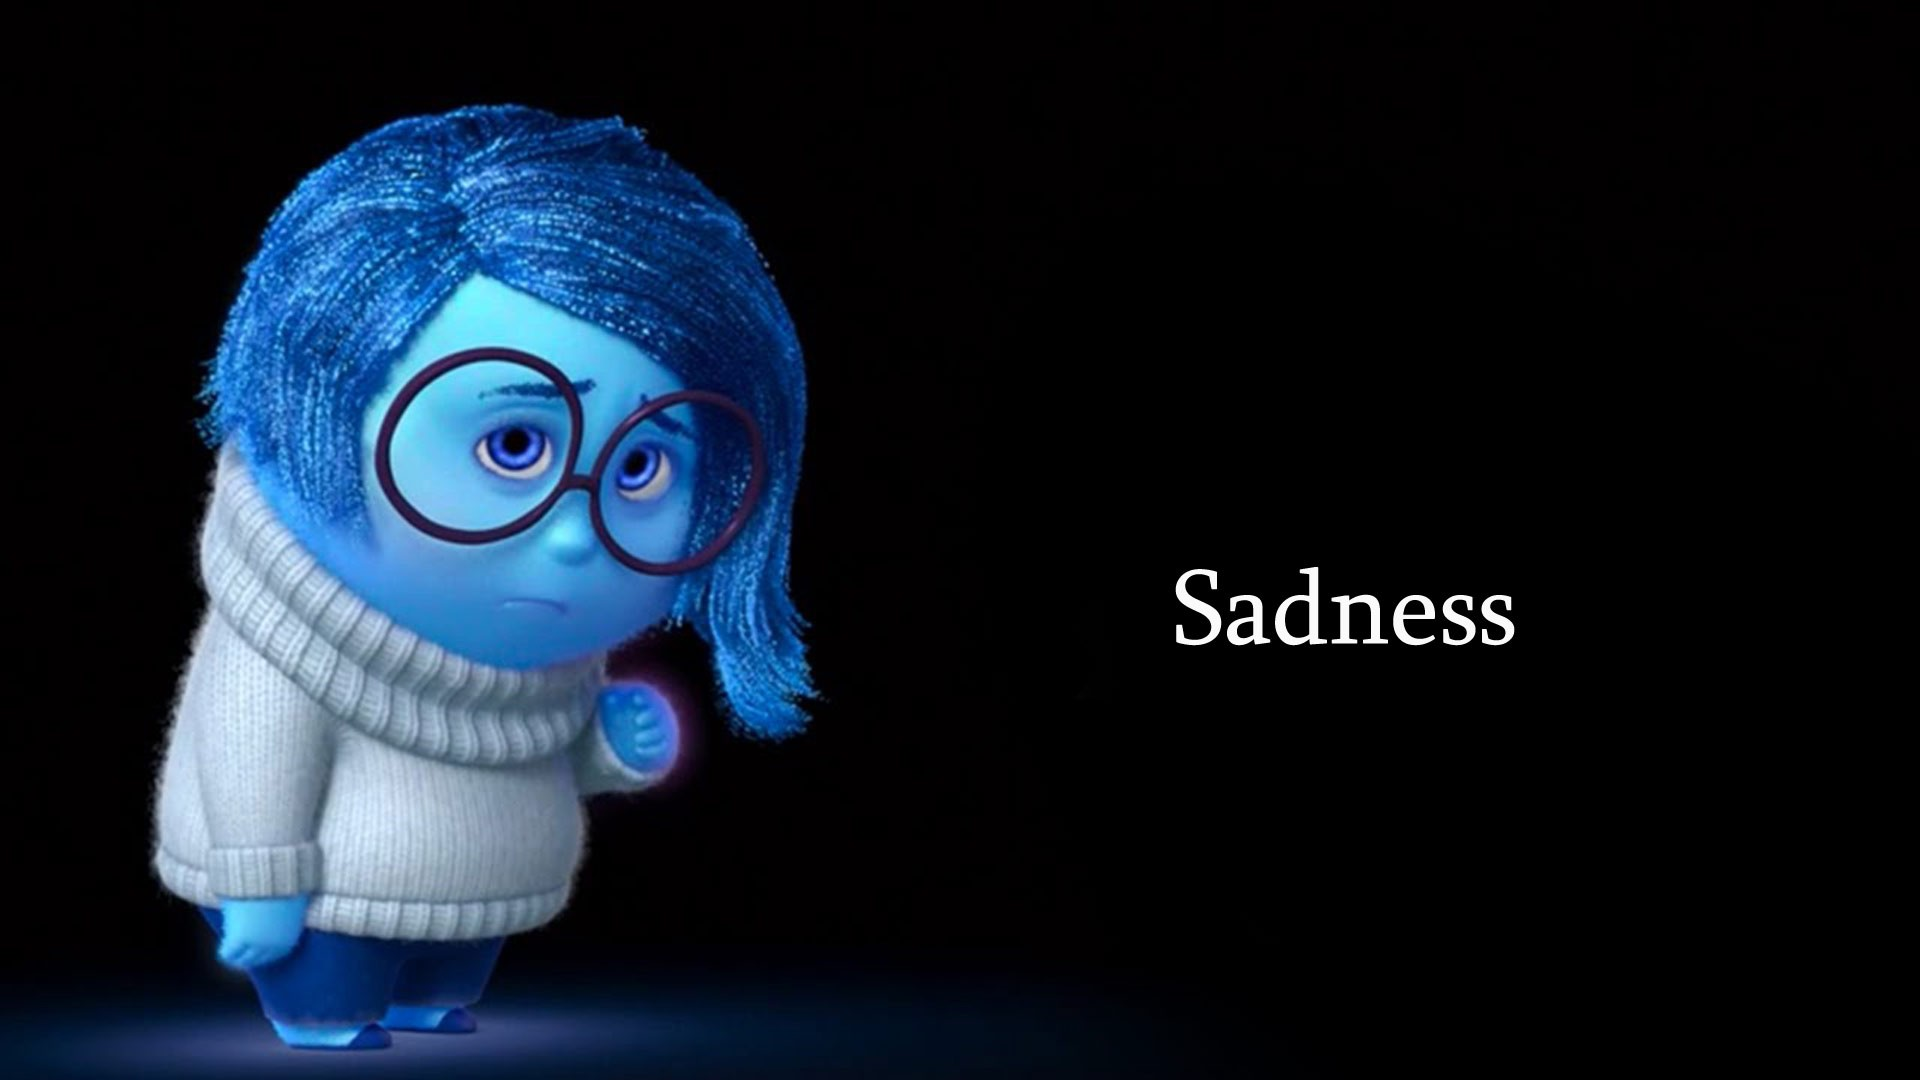 48 Sadness Inside Out Wallpaper On Wallpapersafari